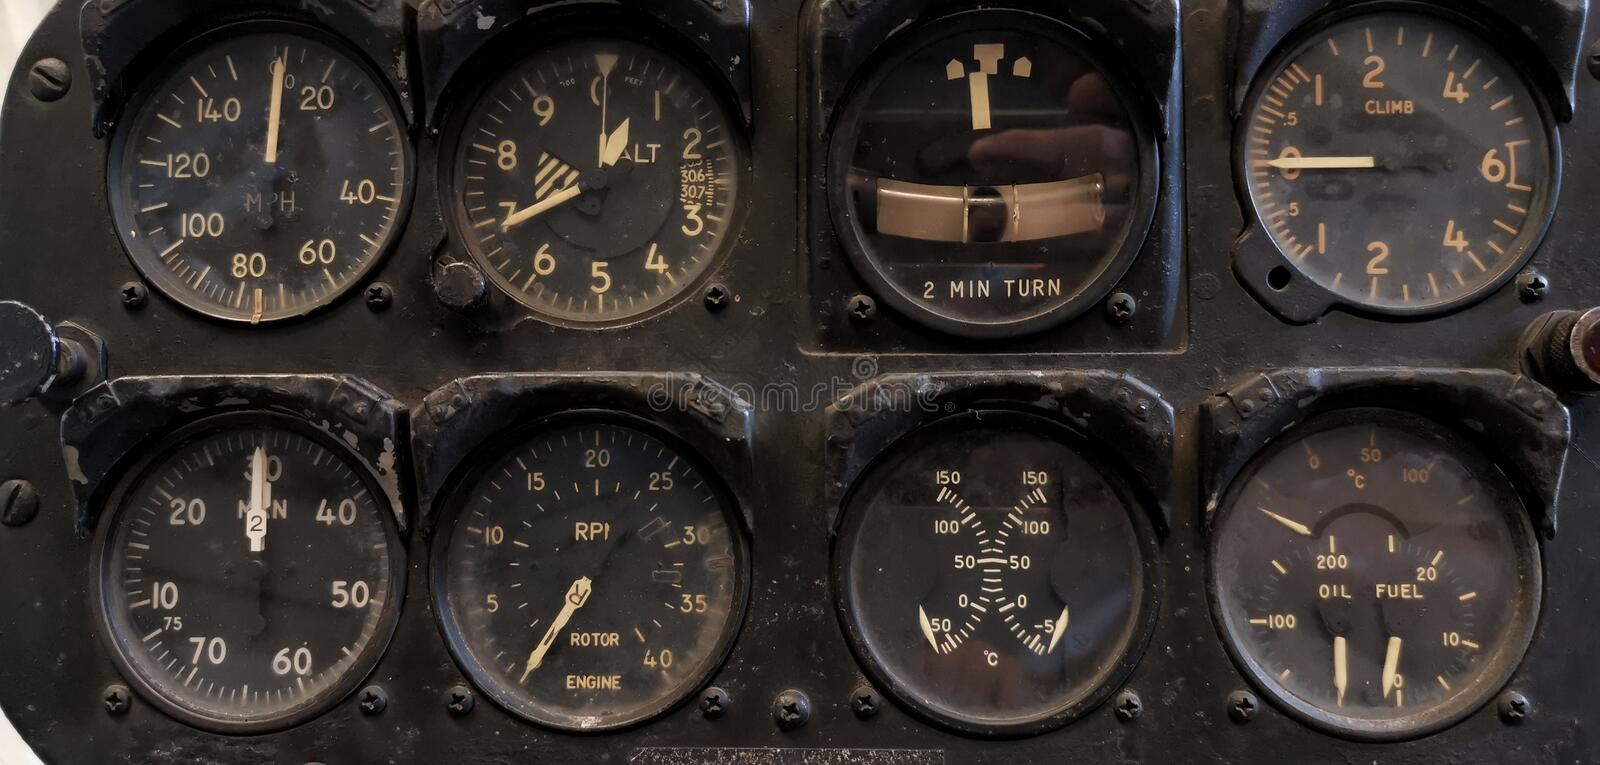 Vintage dashboard of helicopter. With gauges, instruments, cockpit, deck, air, altimeter, altitude, electronics, aviation, old, readings, marks, flight, fly royalty free stock photography